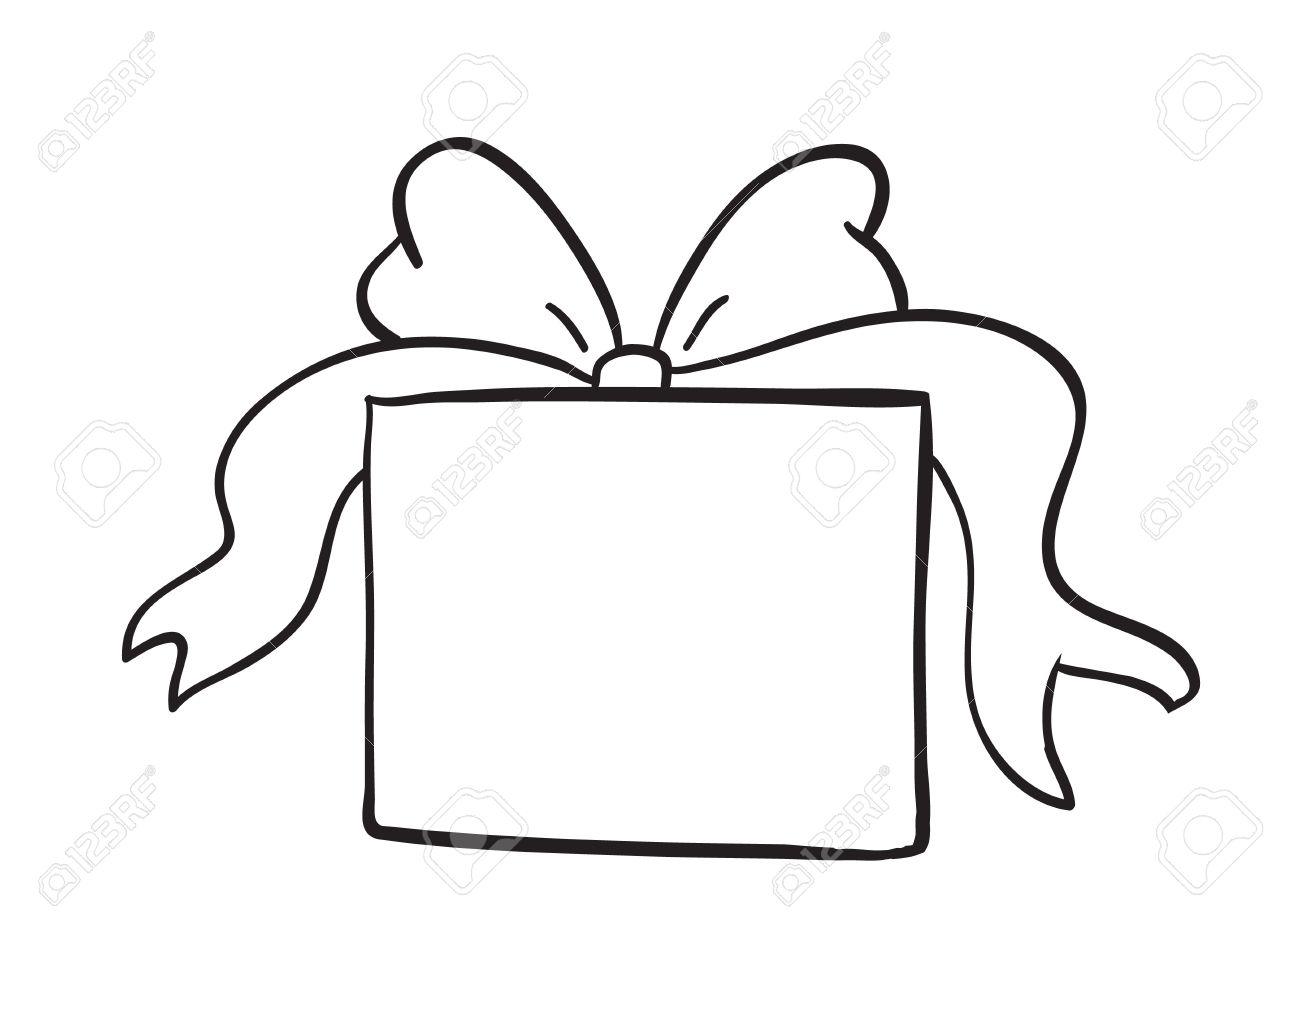 Gift box clipart black and white 4 clipart station gift box clipart black and white 4 negle Image collections